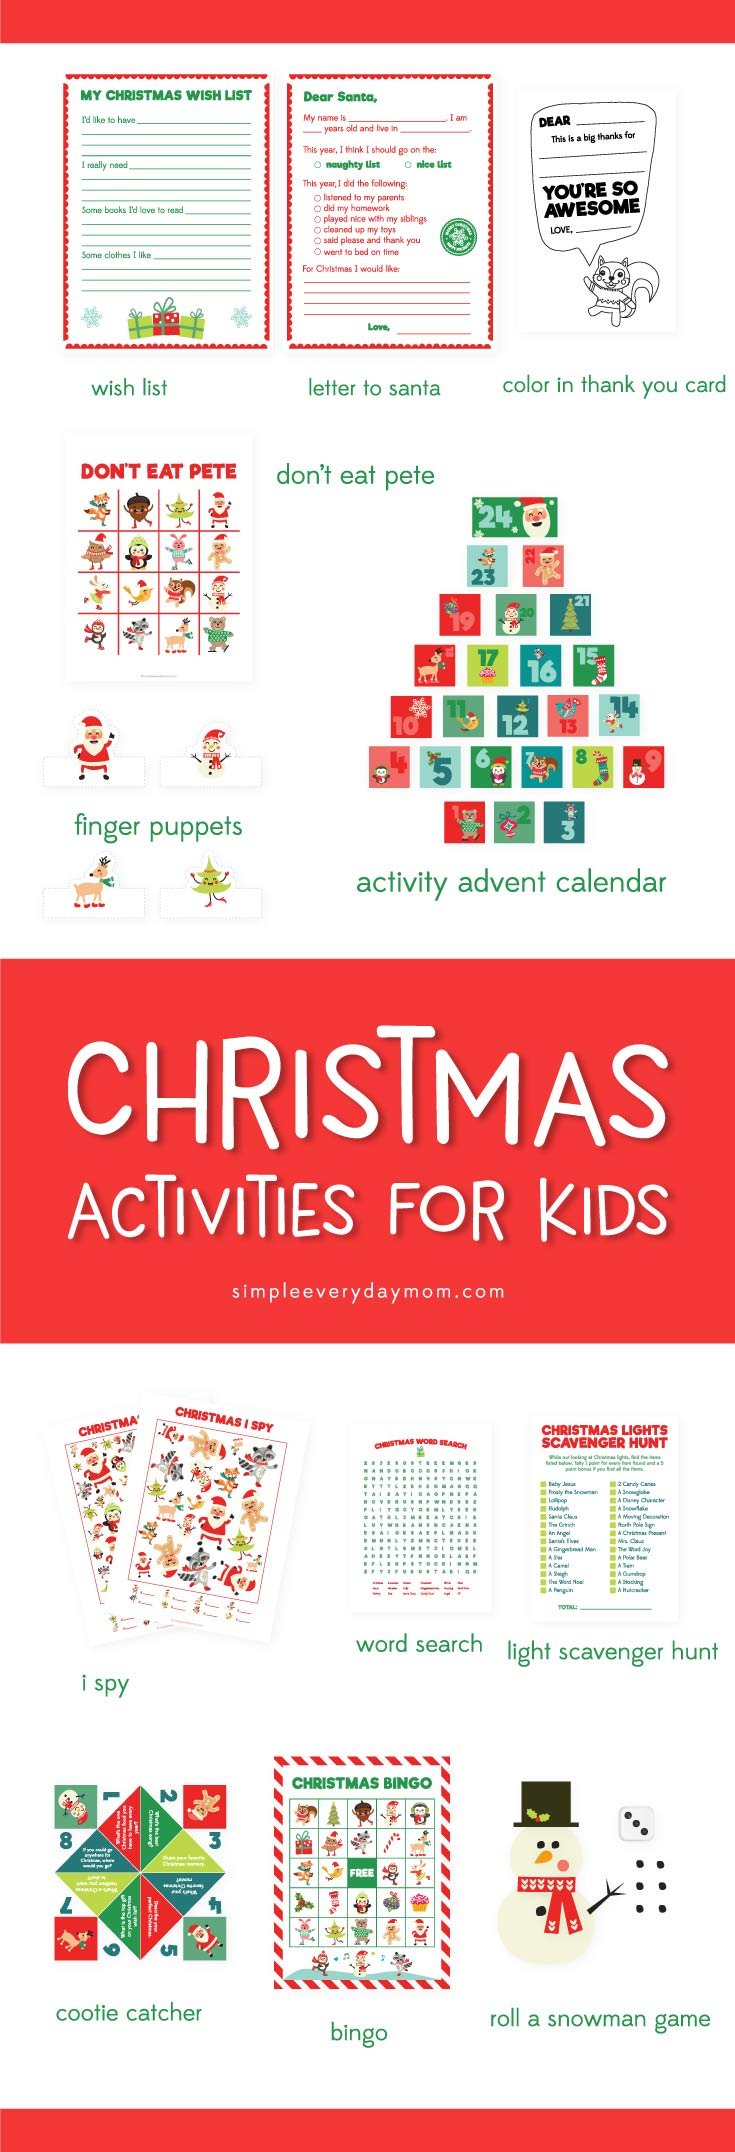 Printable Christmas Wish List For Kids.12 Christmas Activities For Kids You Ll Want To Do Every Year